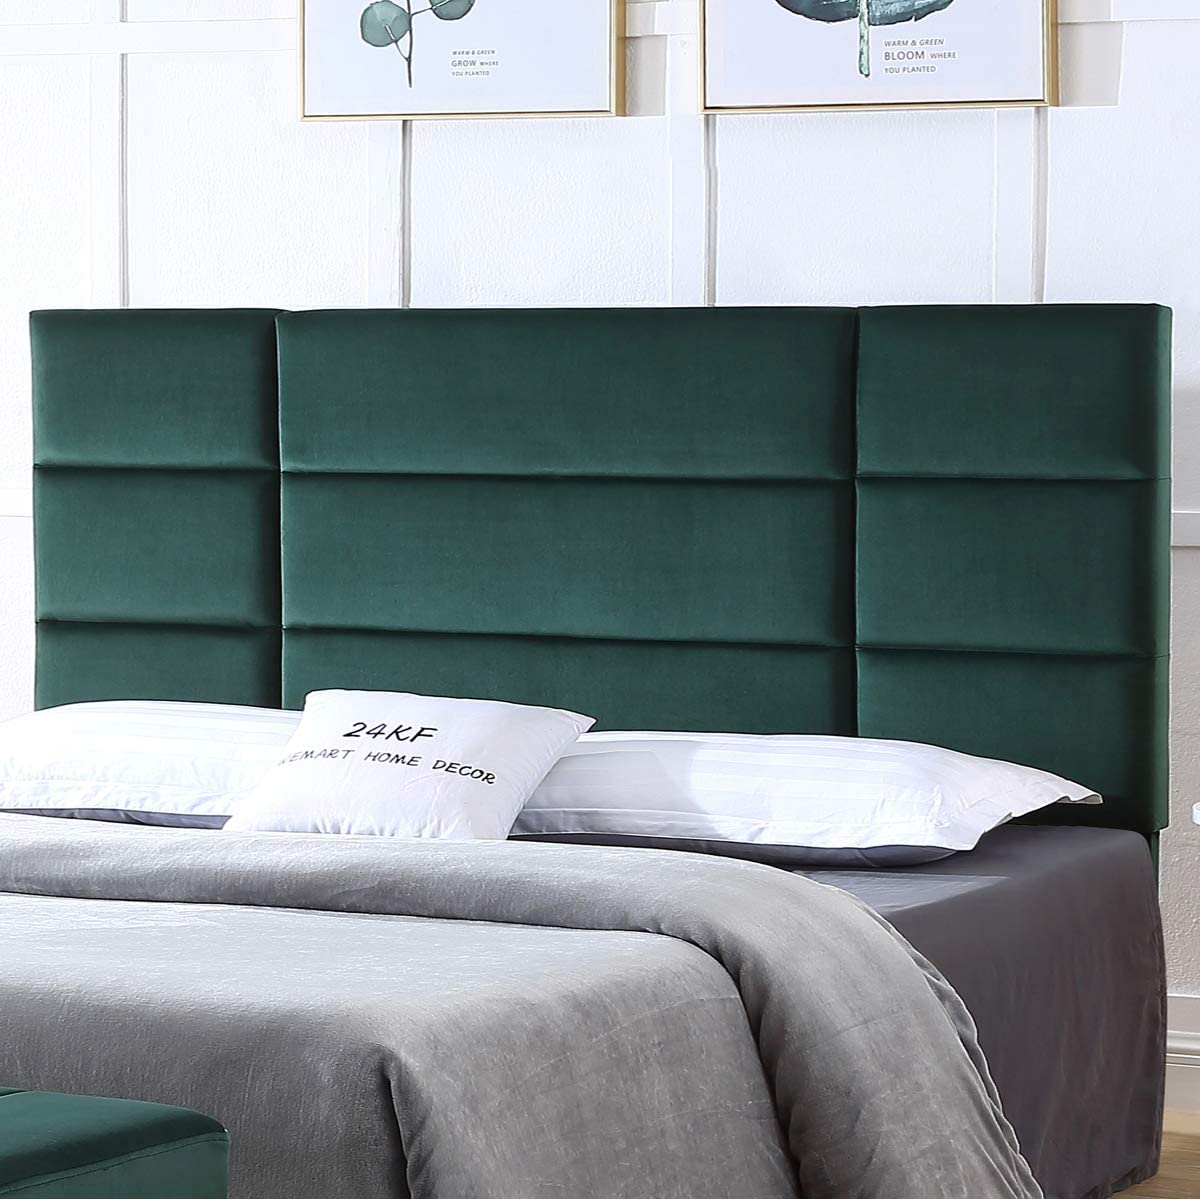 24KF Mid-Century Upholstered discount Tufted Comfortable w Surprise price Headboard King